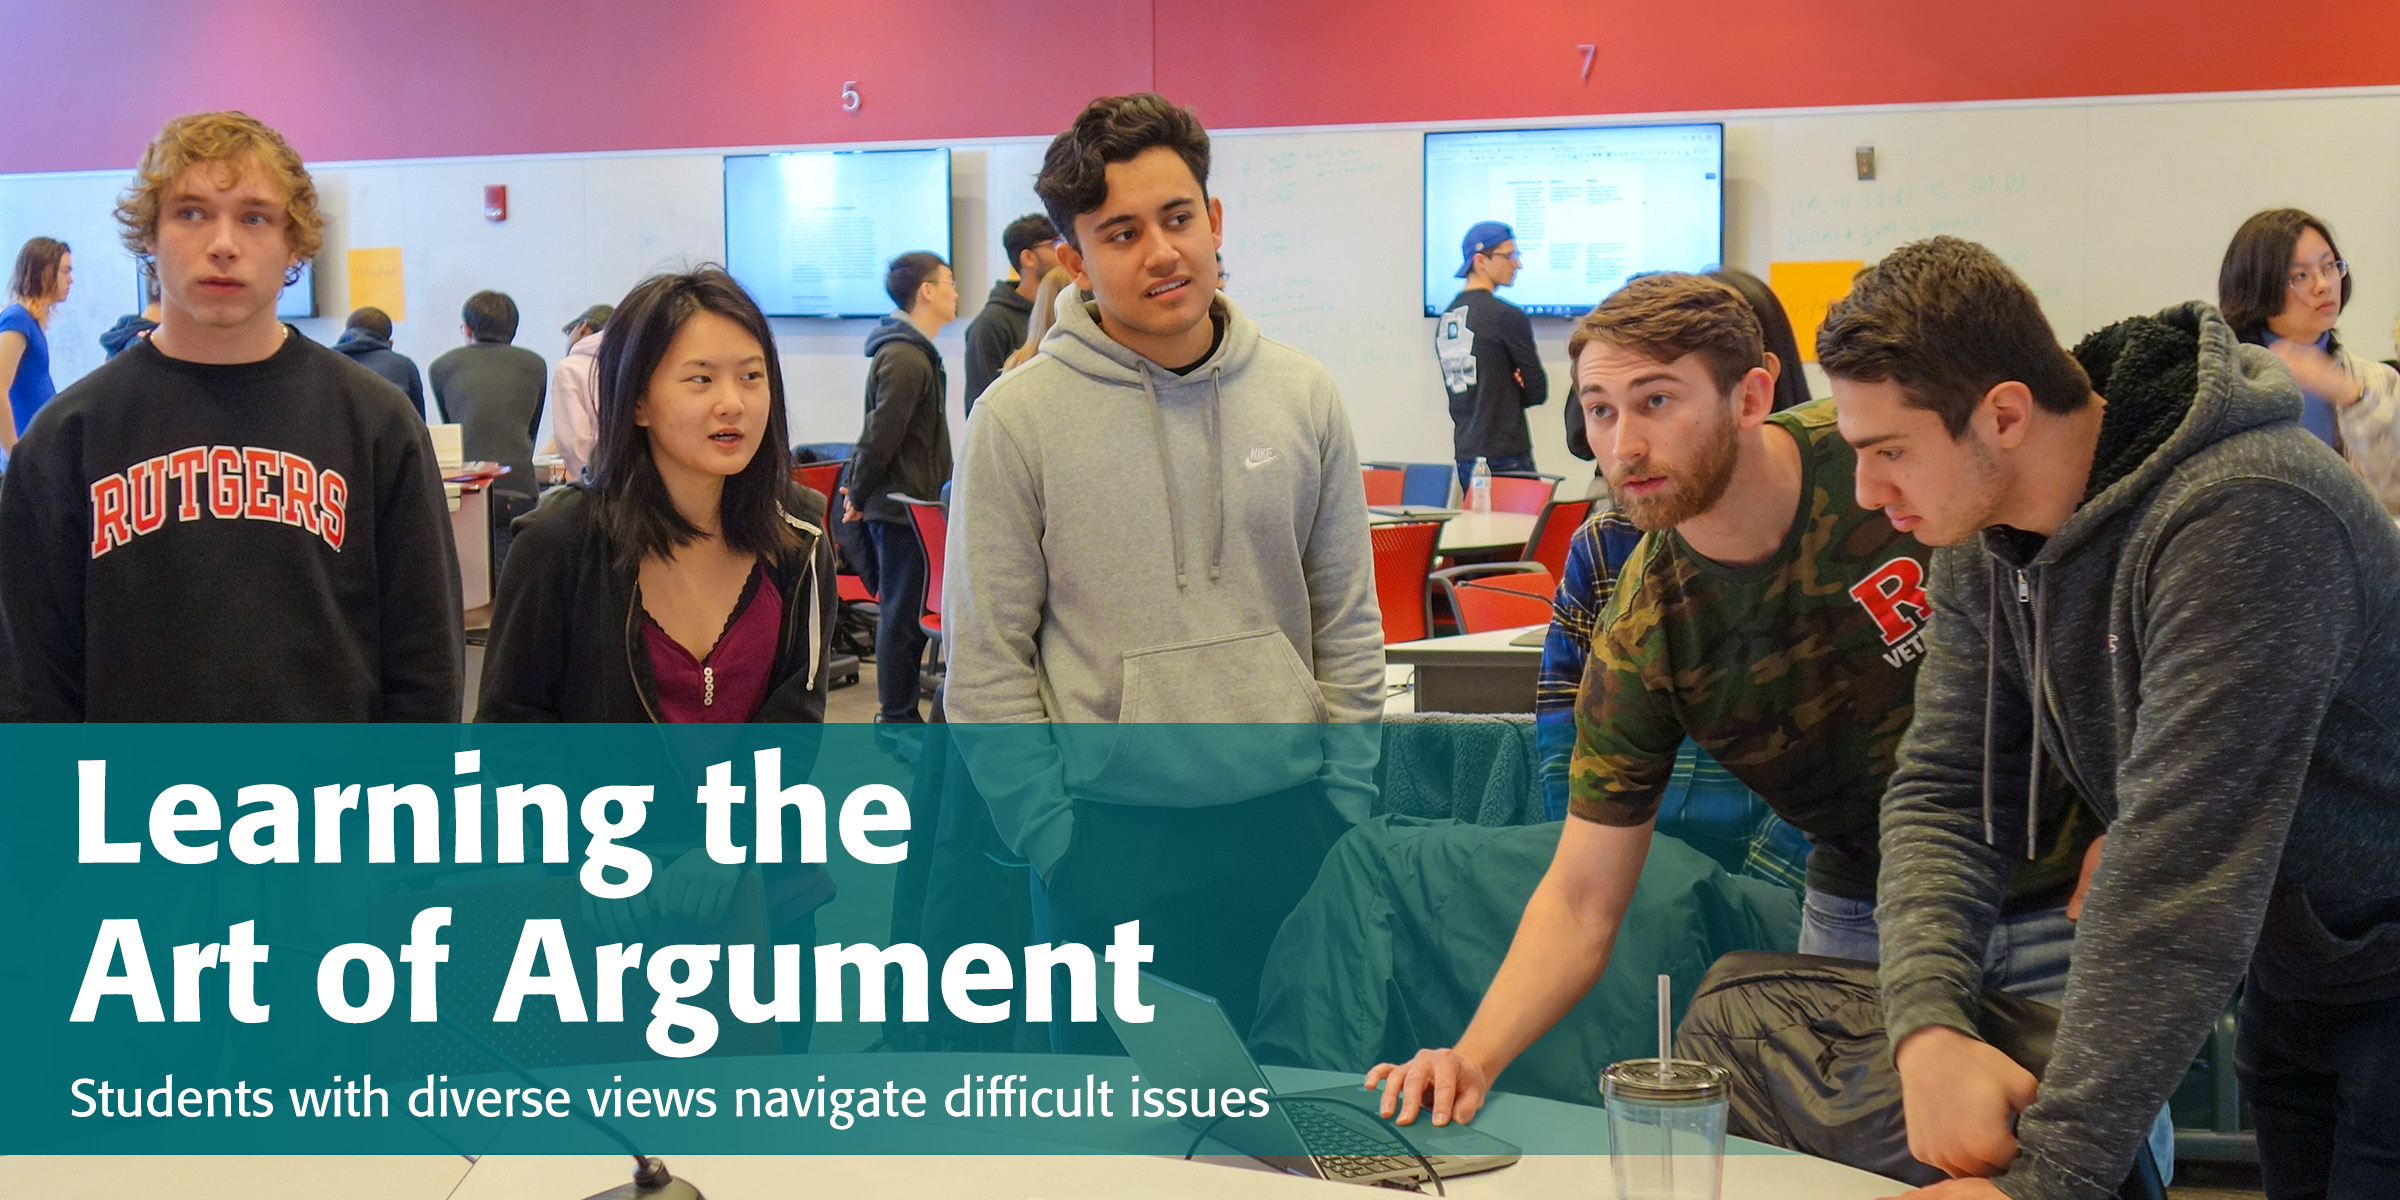 Learning the Art of Argument: Students with diverse views navigate difficult issues